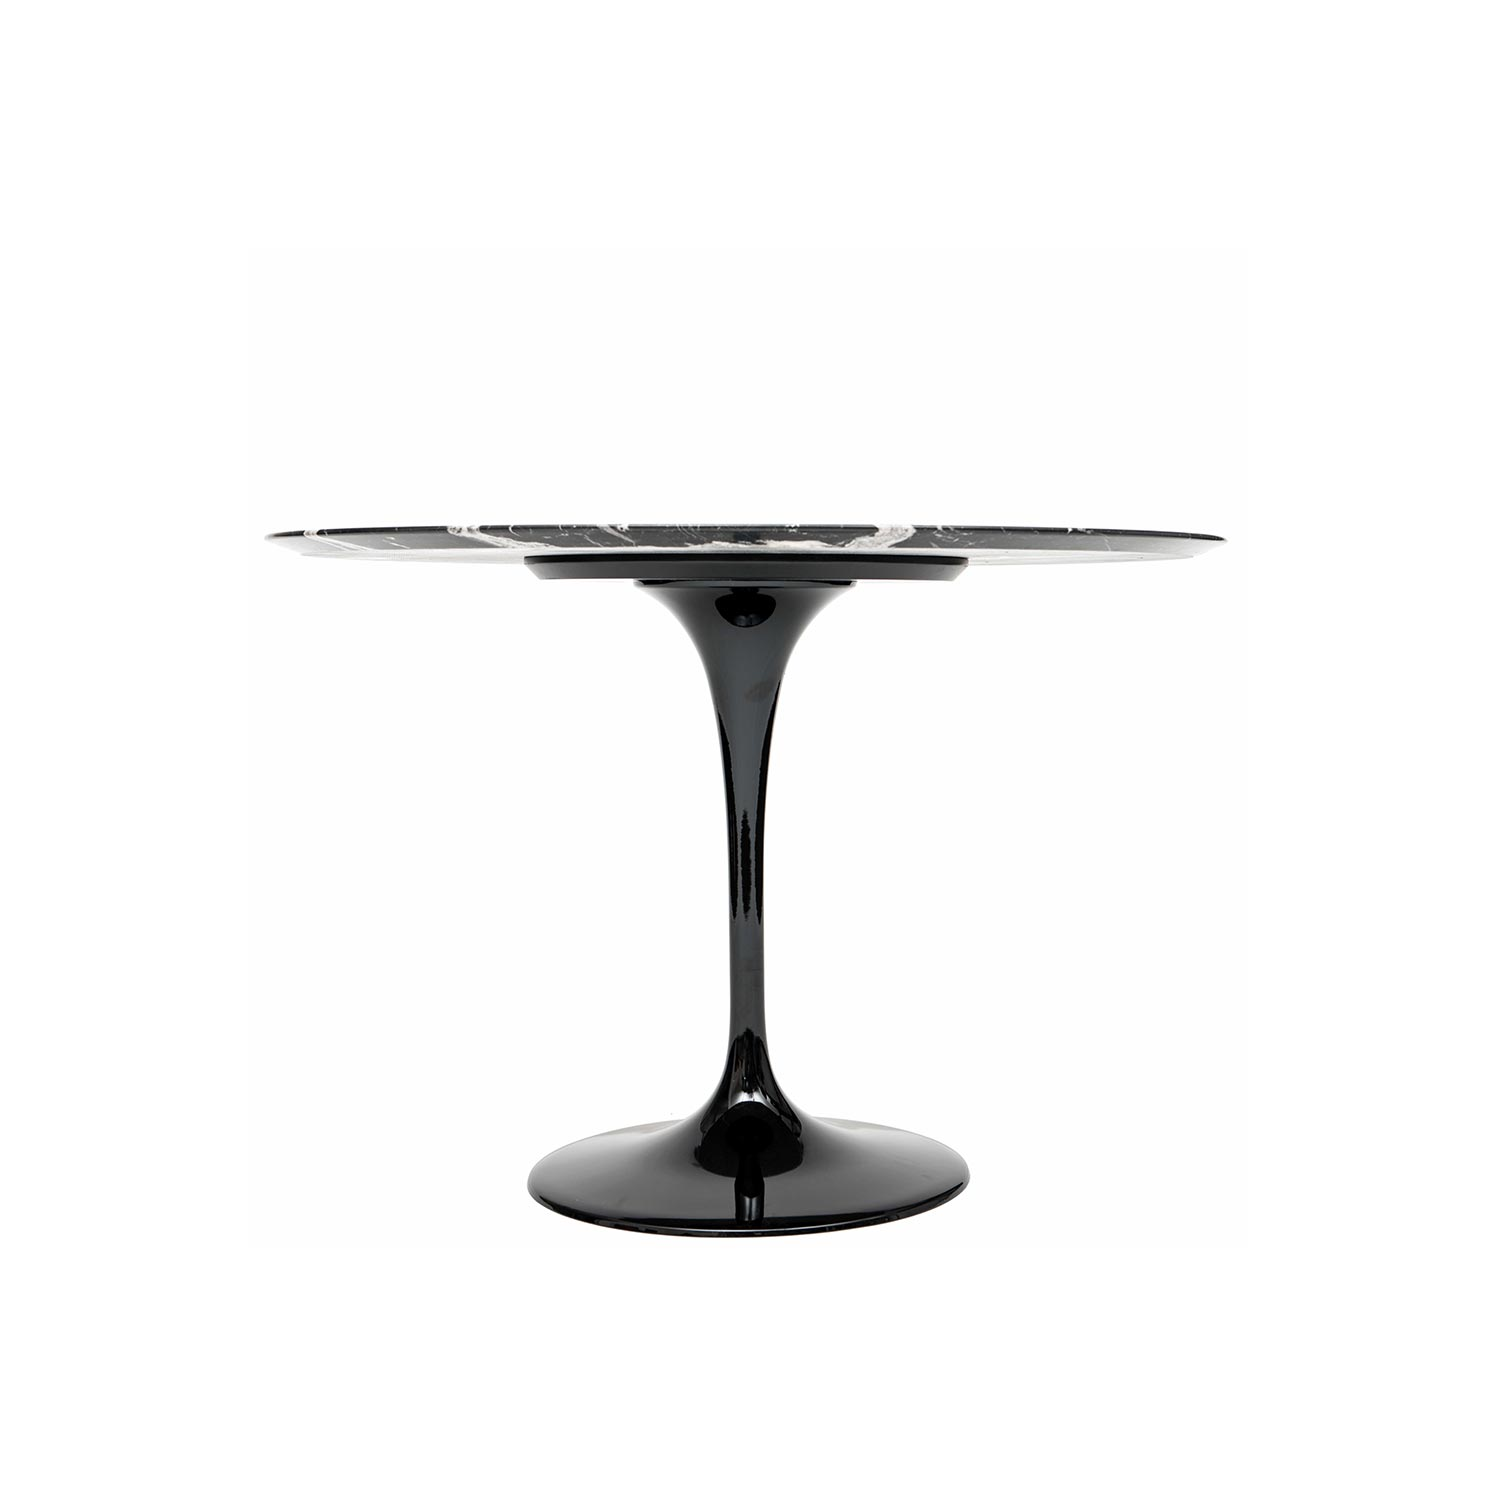 tulip dining table by eero saarinen a steelform design classic. Black Bedroom Furniture Sets. Home Design Ideas